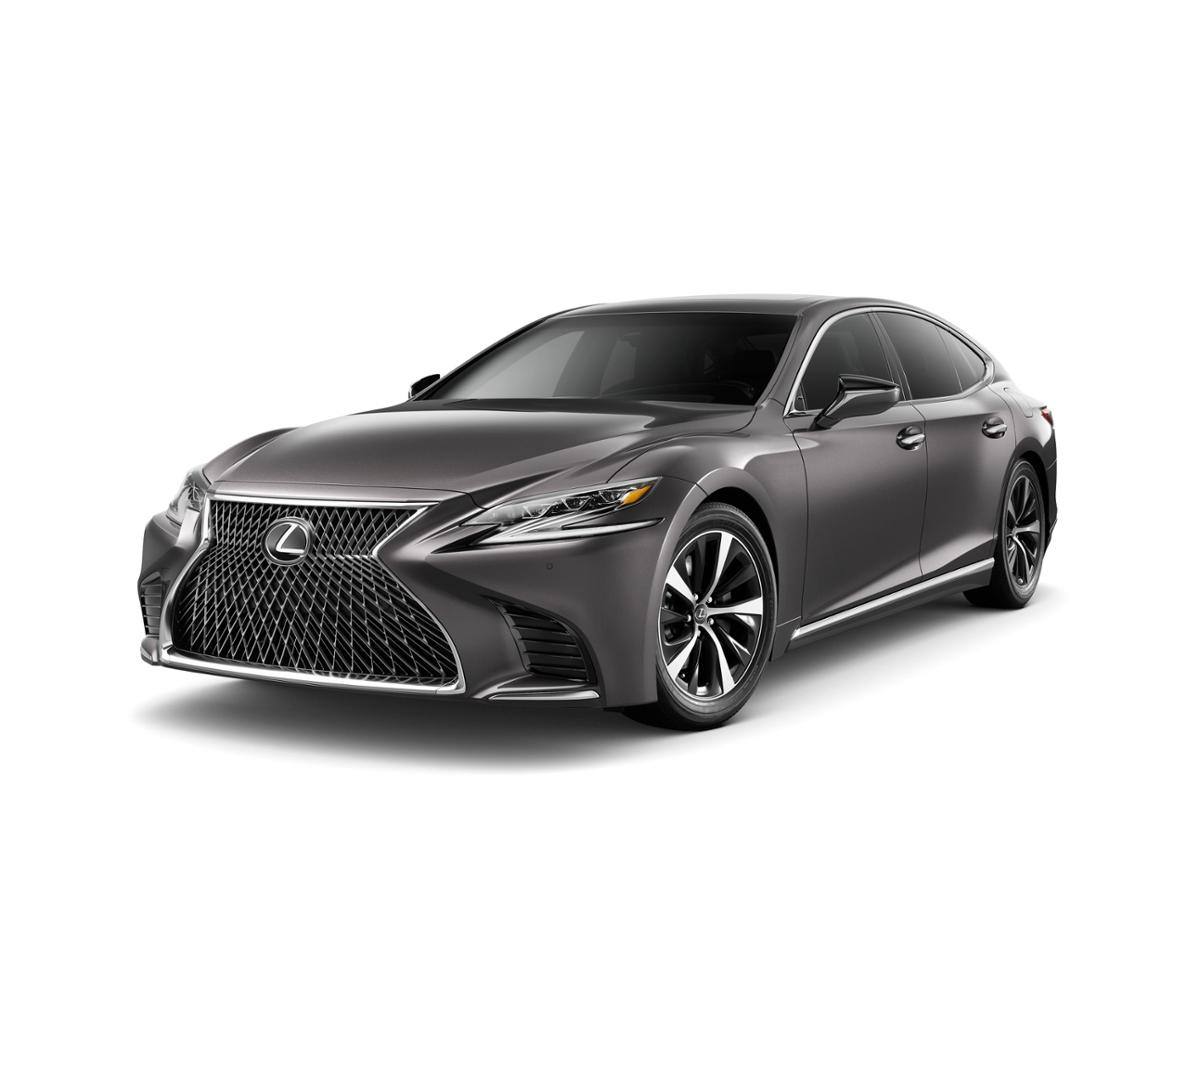 2019 Lexus LS 500 Vehicle Photo in Santa Barbara, CA 93105